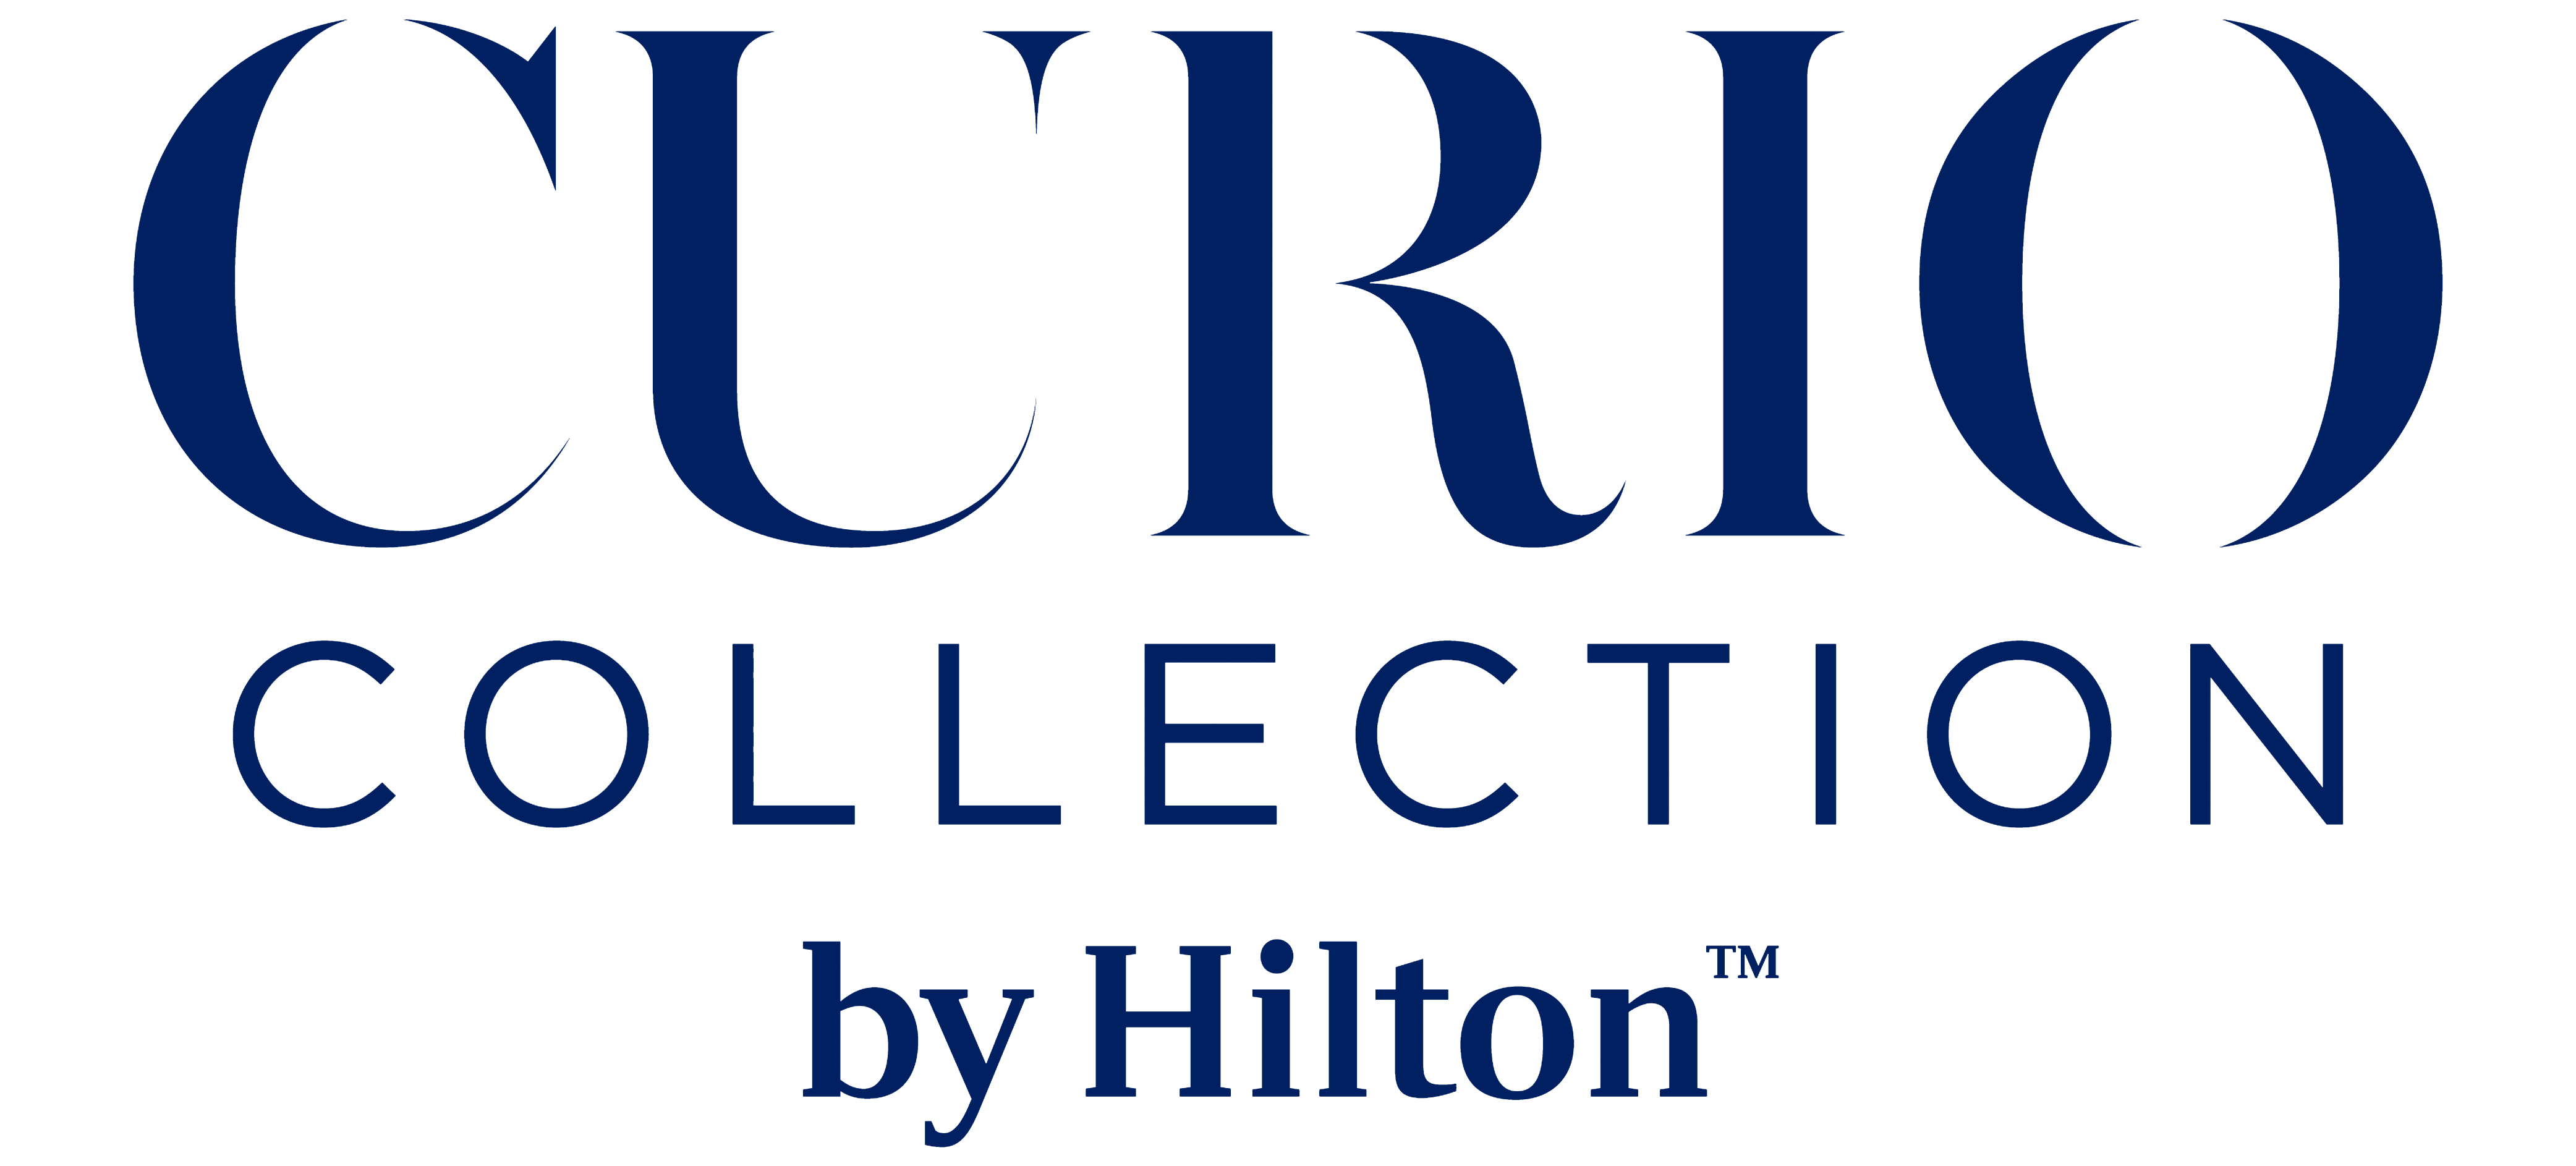 Visit Curio Collection - By Hilton website